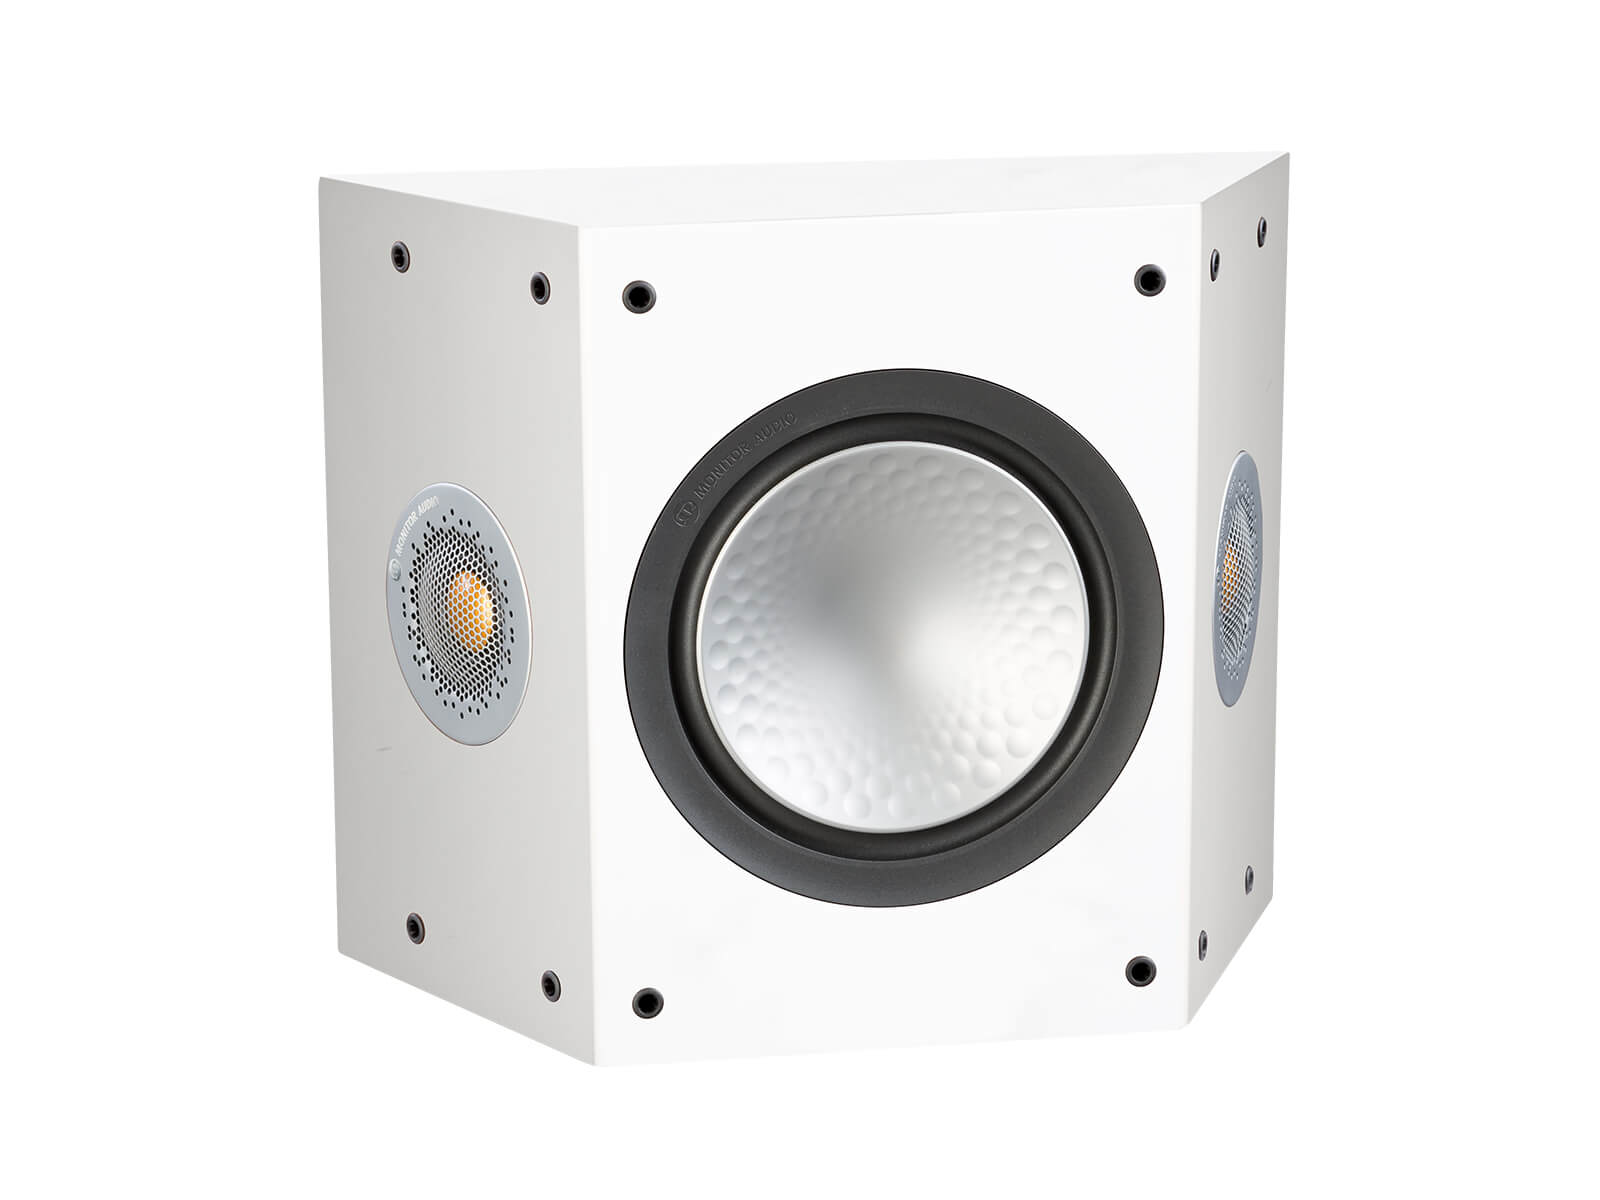 Silver FX, grille-less surround speakers, with a satin white finish.